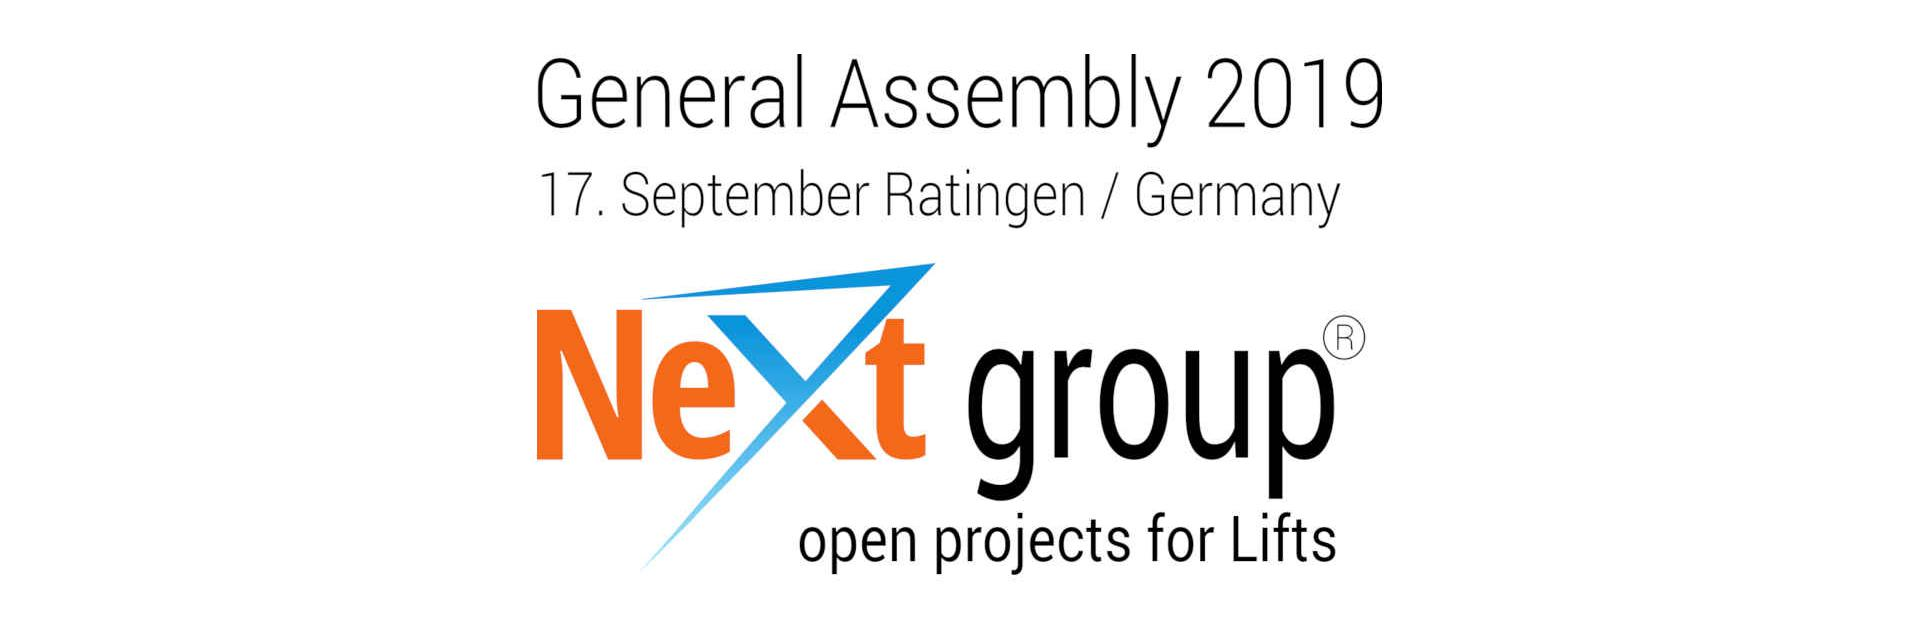 NeXt group General Assembly 2019